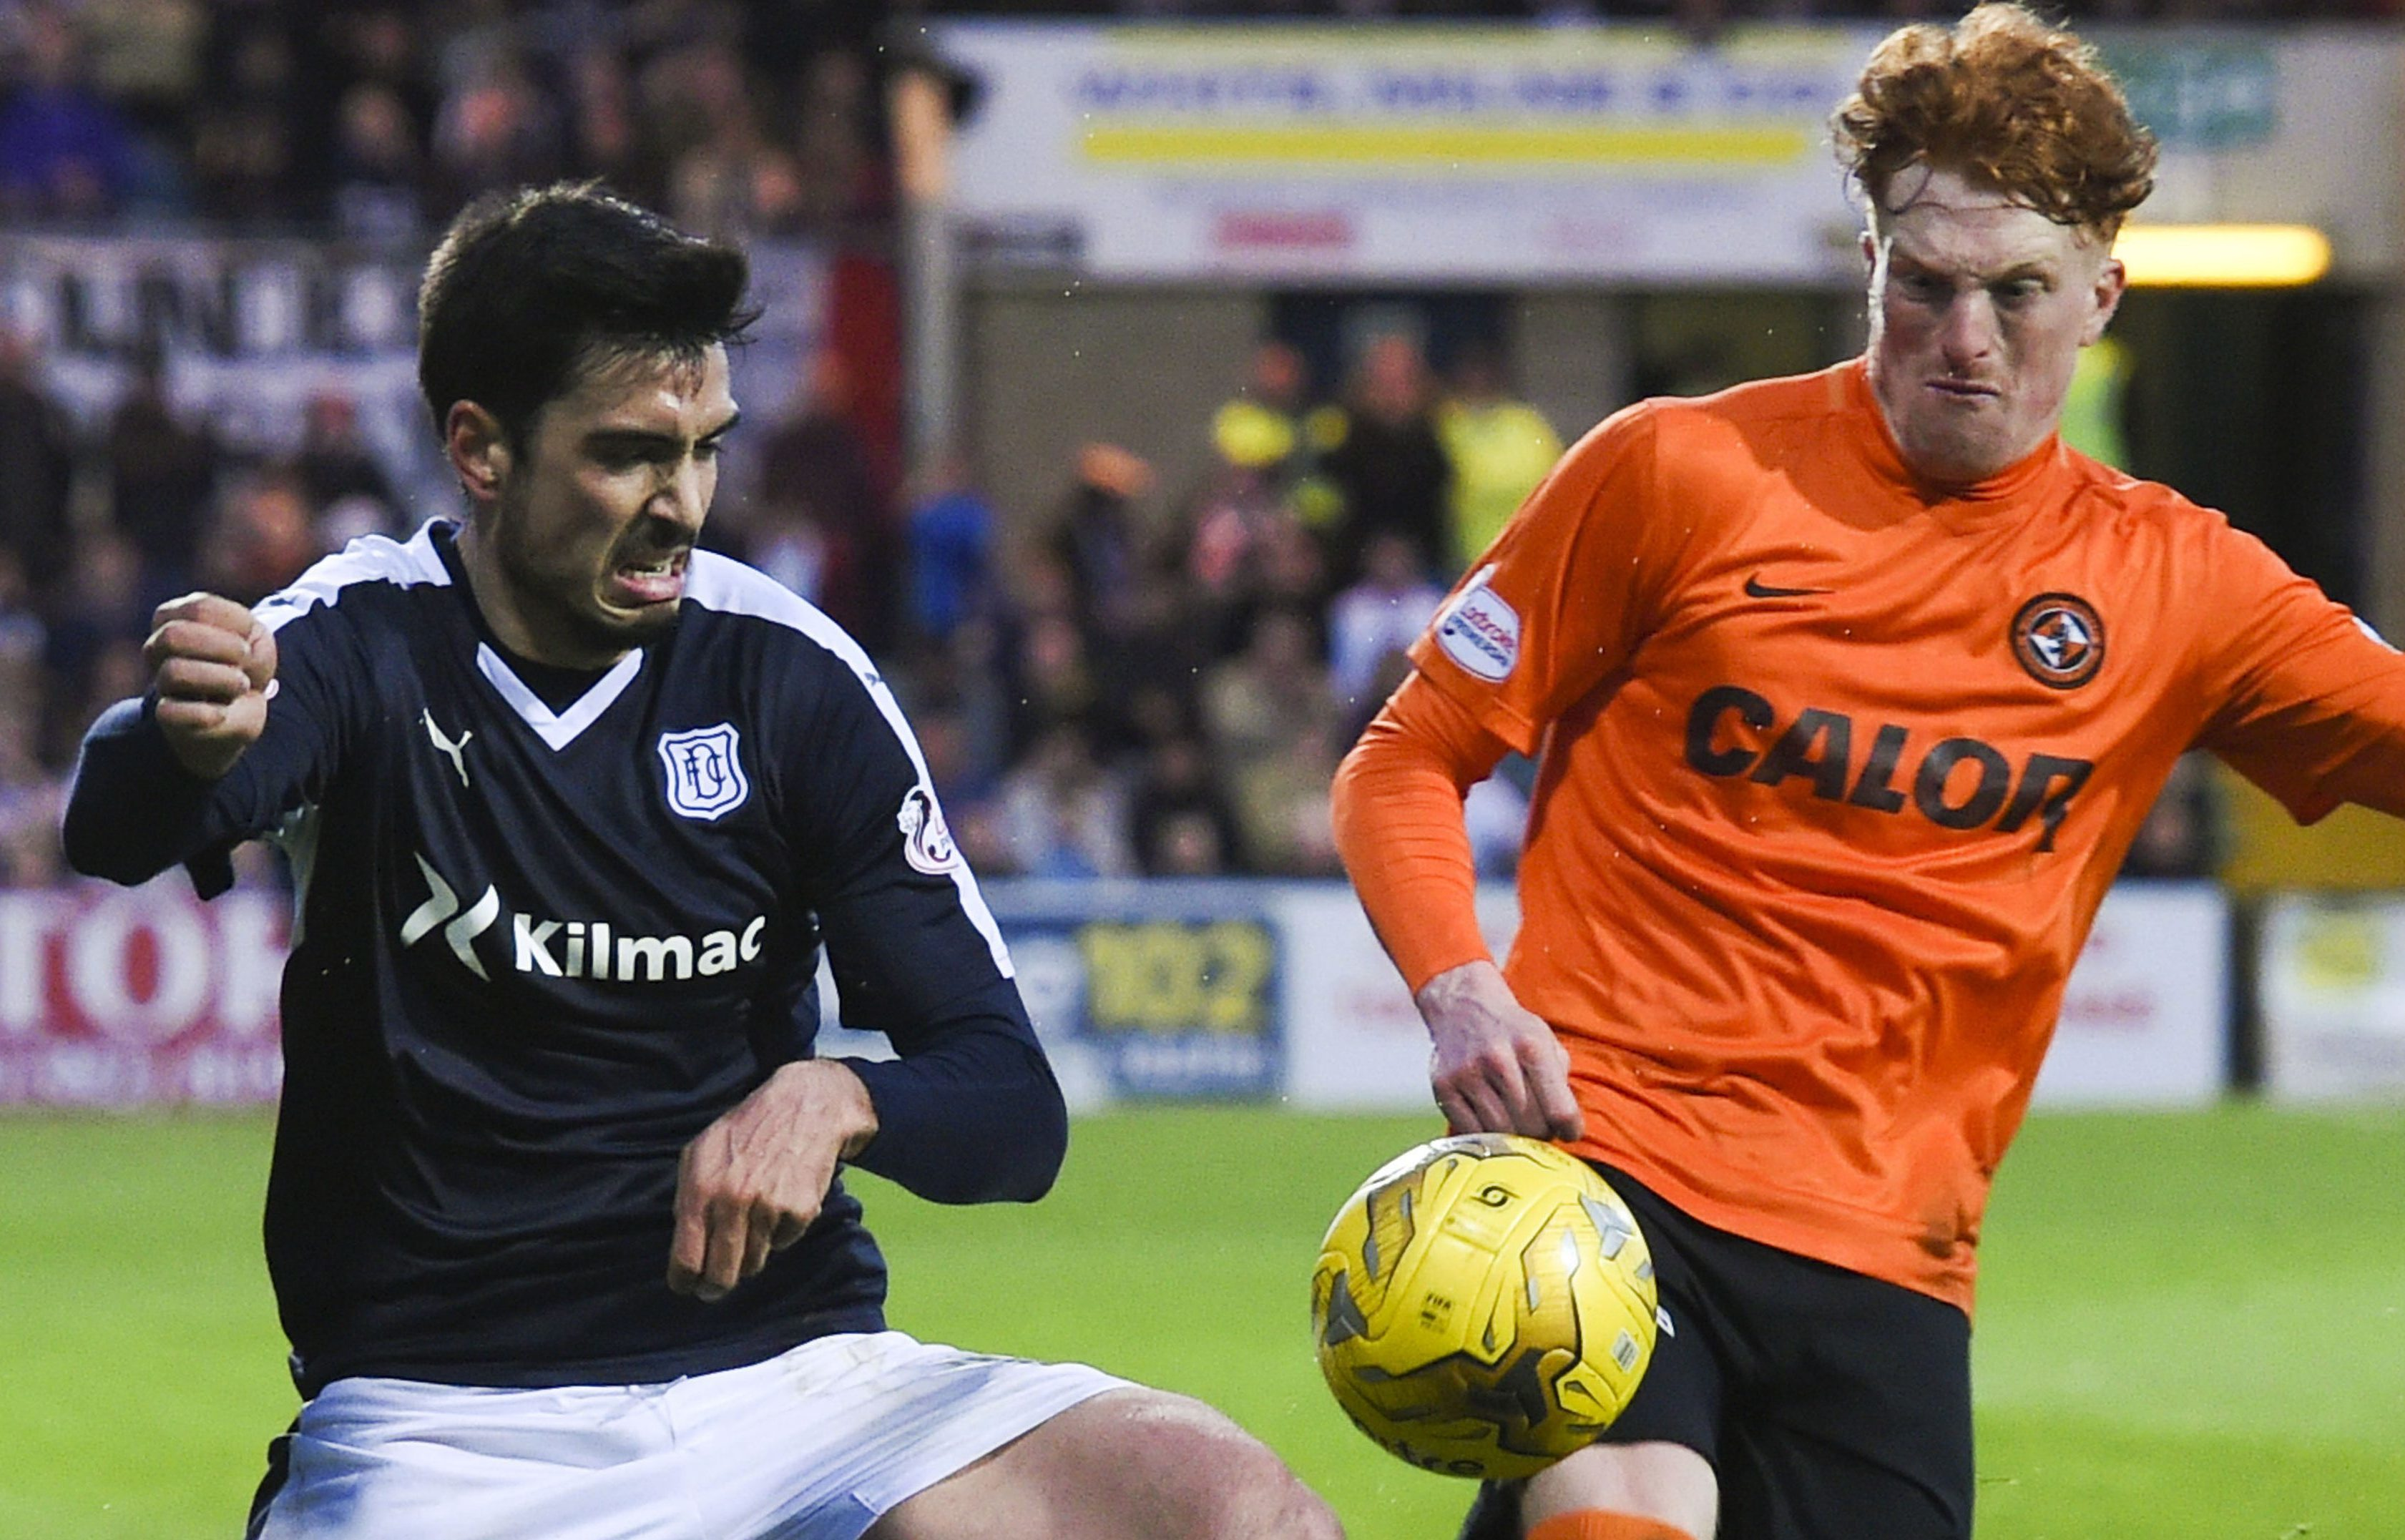 Should Dundee derbies be thing of the past?